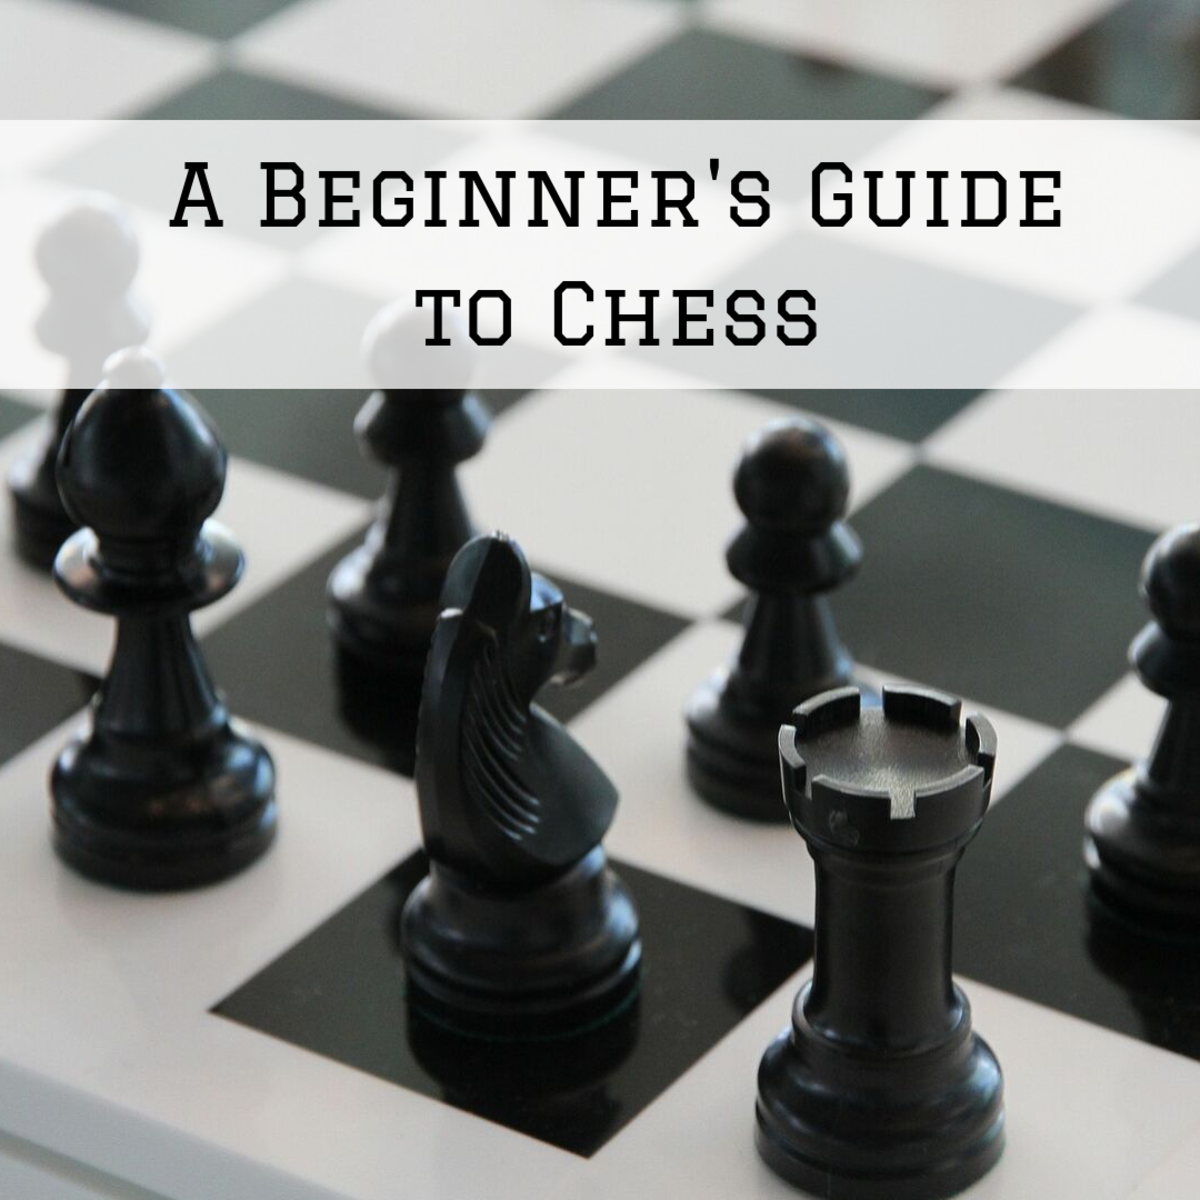 Learn how to set up a game of chess, move the different pieces, and start playing this classic game.